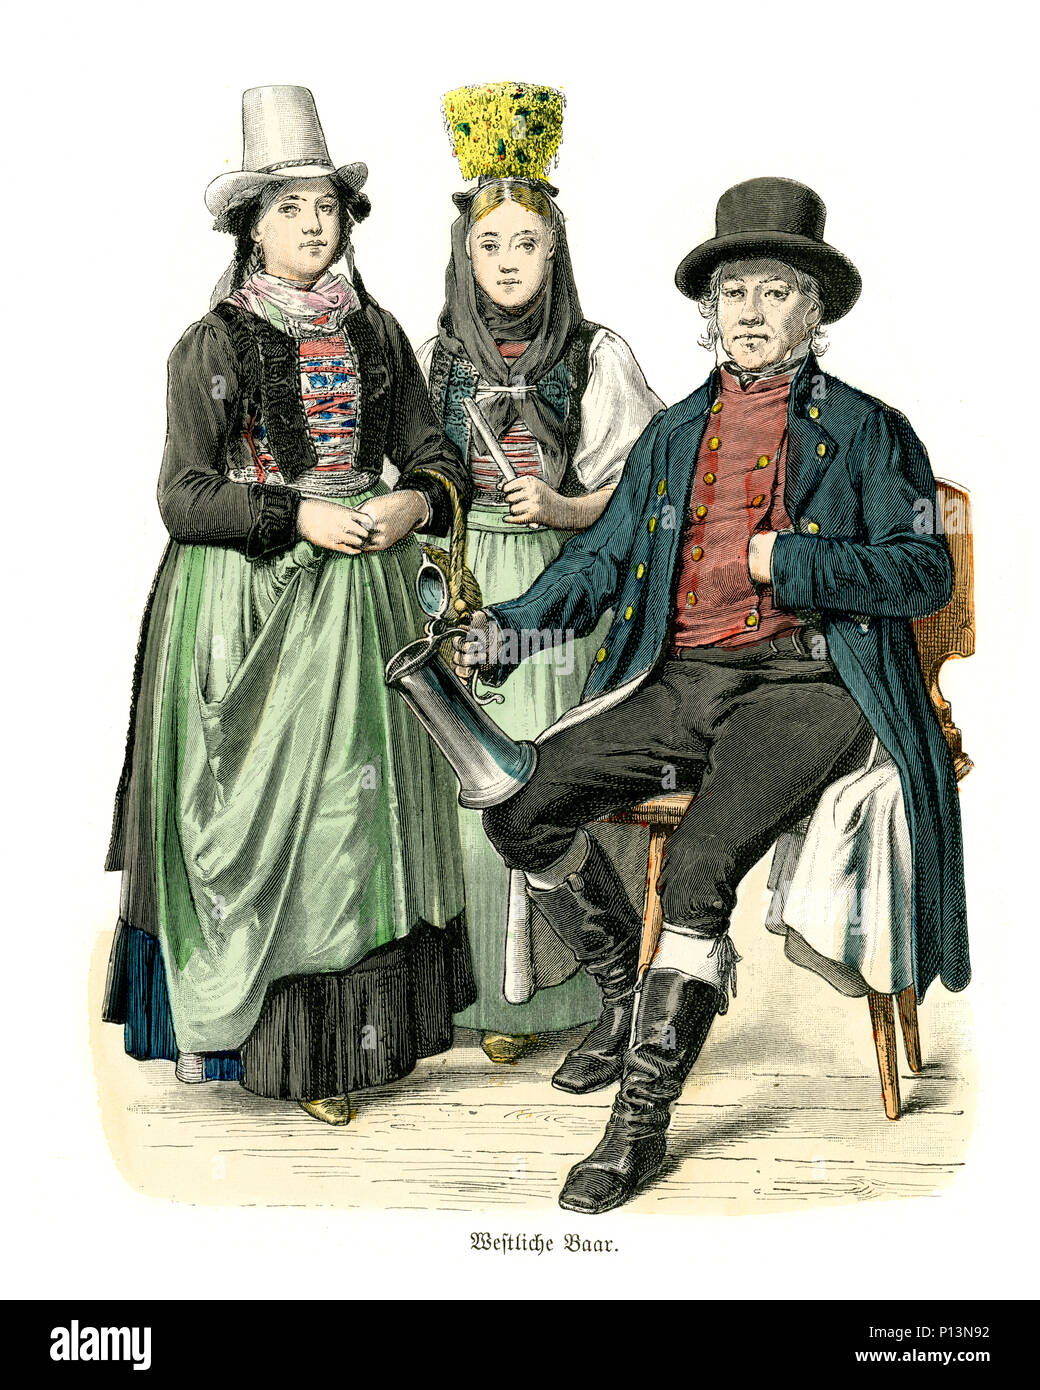 Vintage engraving of History of Fashion, Costumes of Germany Men and women of Baden19th Century Stock Photo